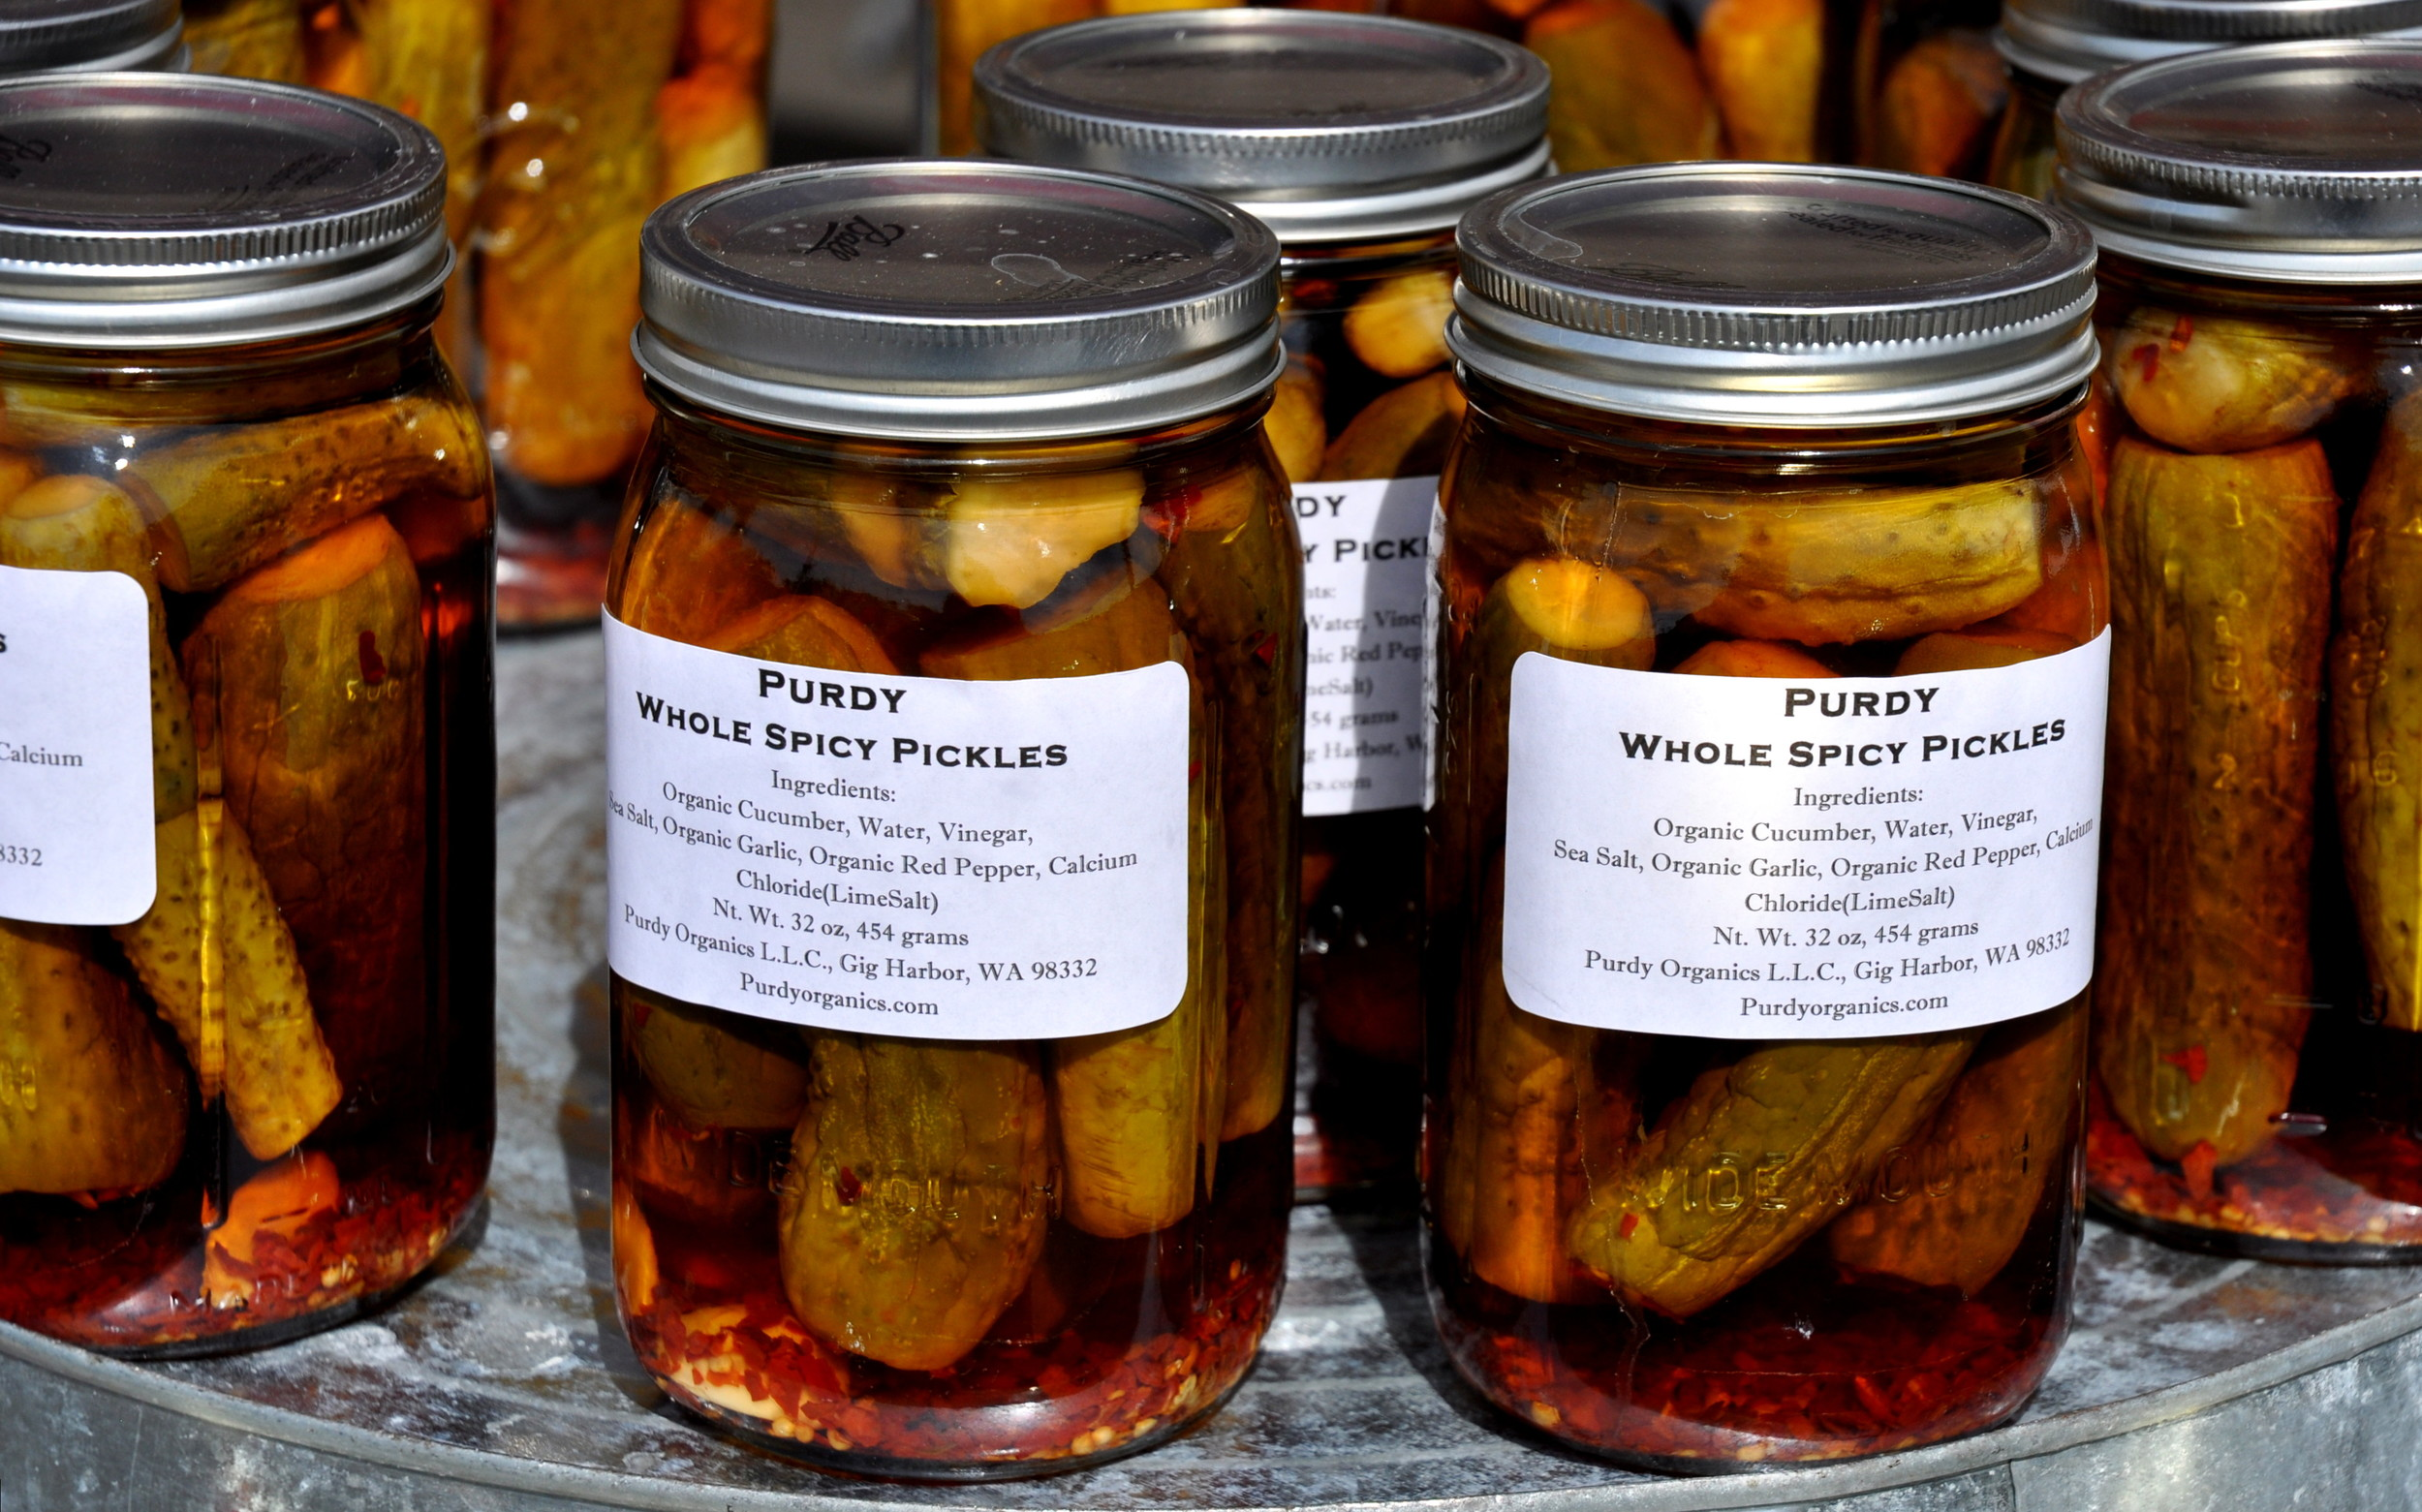 Spicy whole dill pickles from Purdy Pickle. Photo copyright 2014 by Zachary D. Lyons.